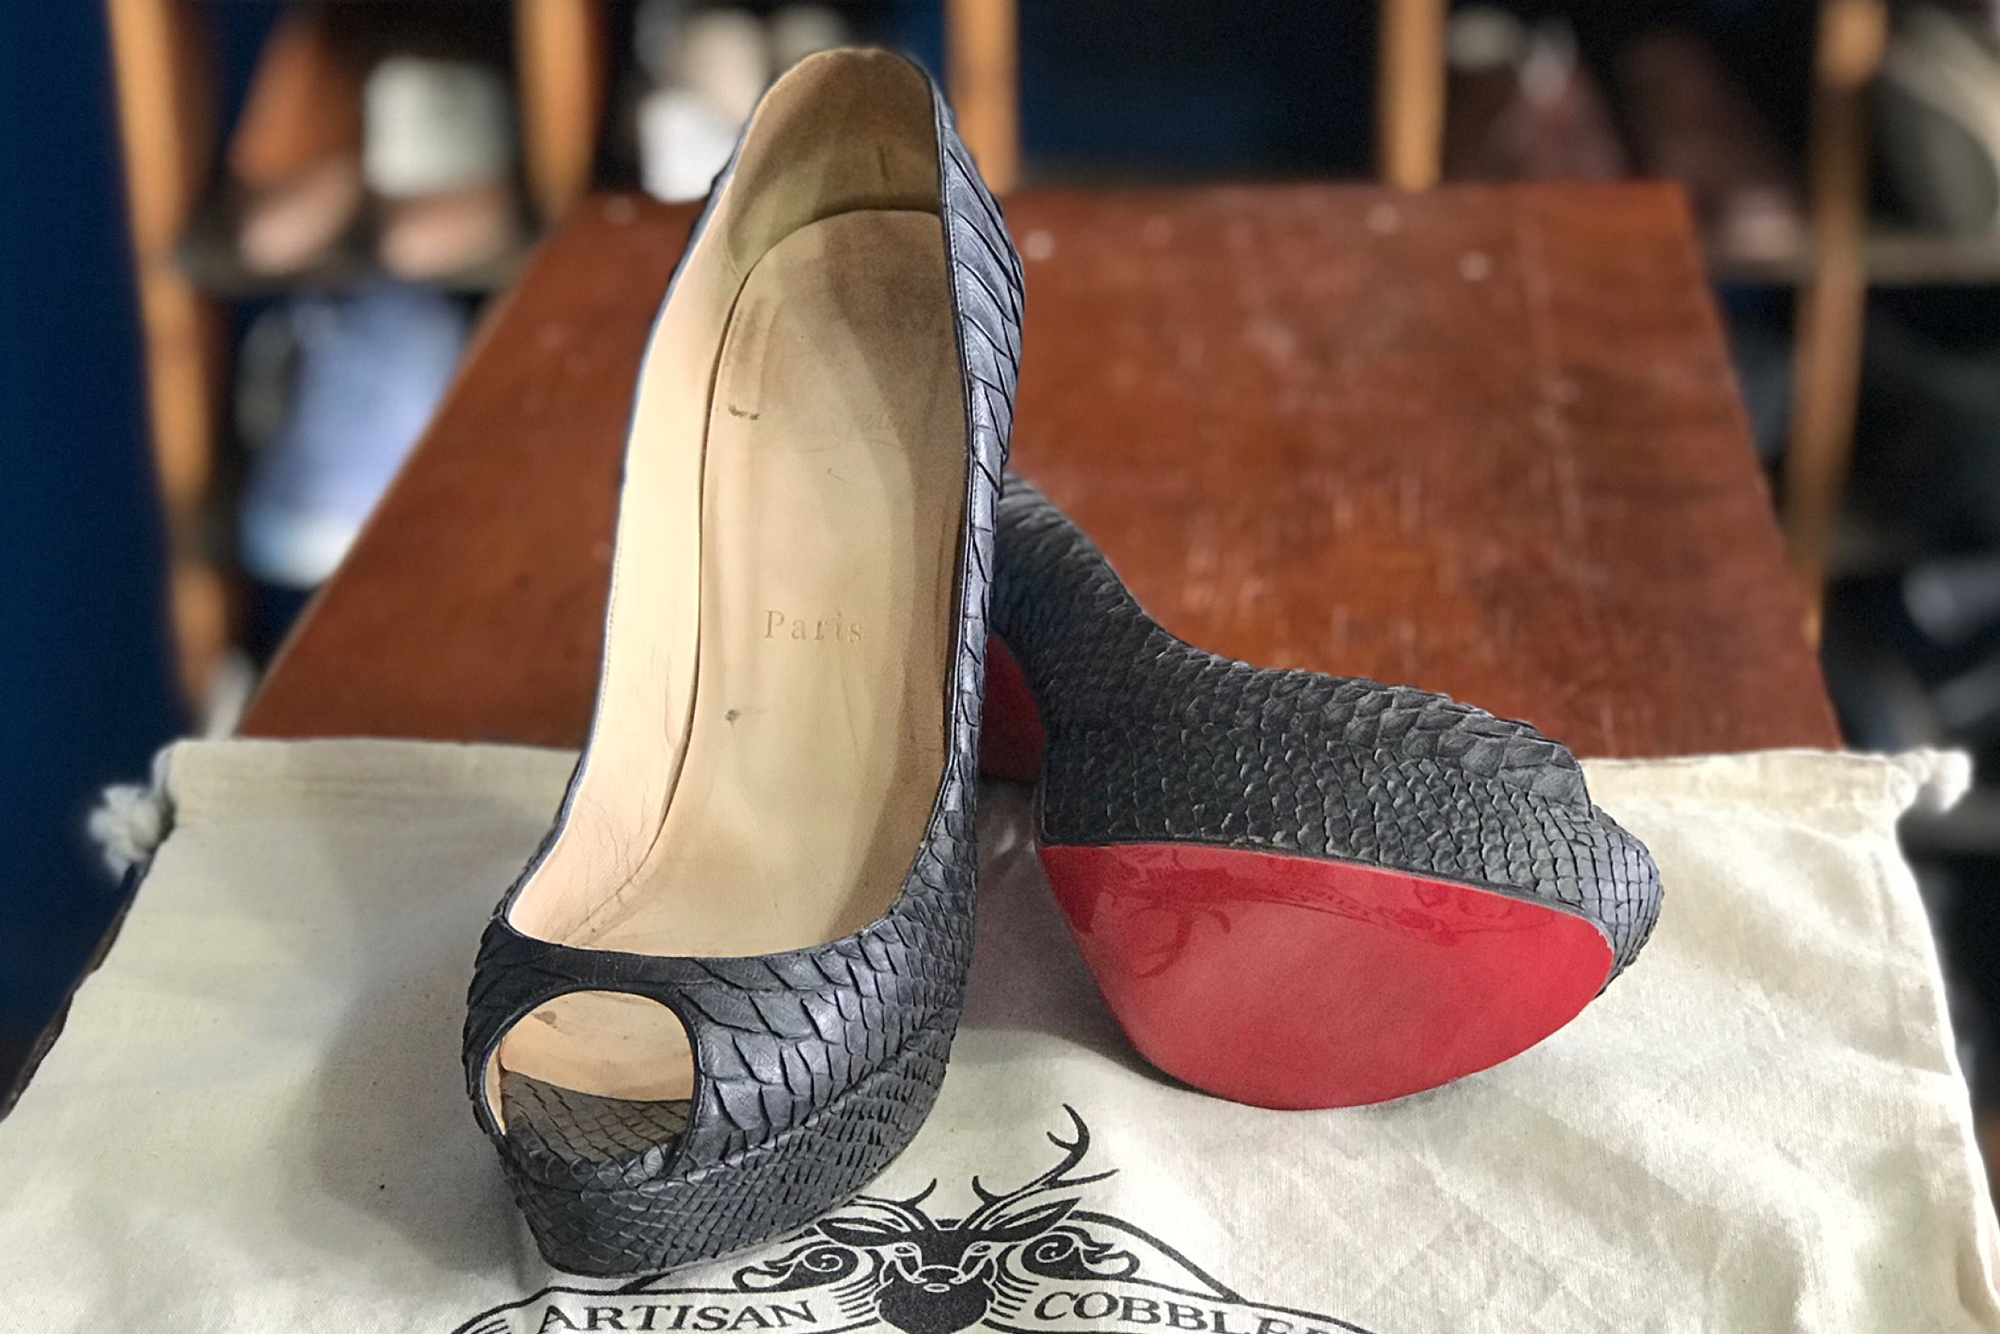 Christian Louboutin sole protector